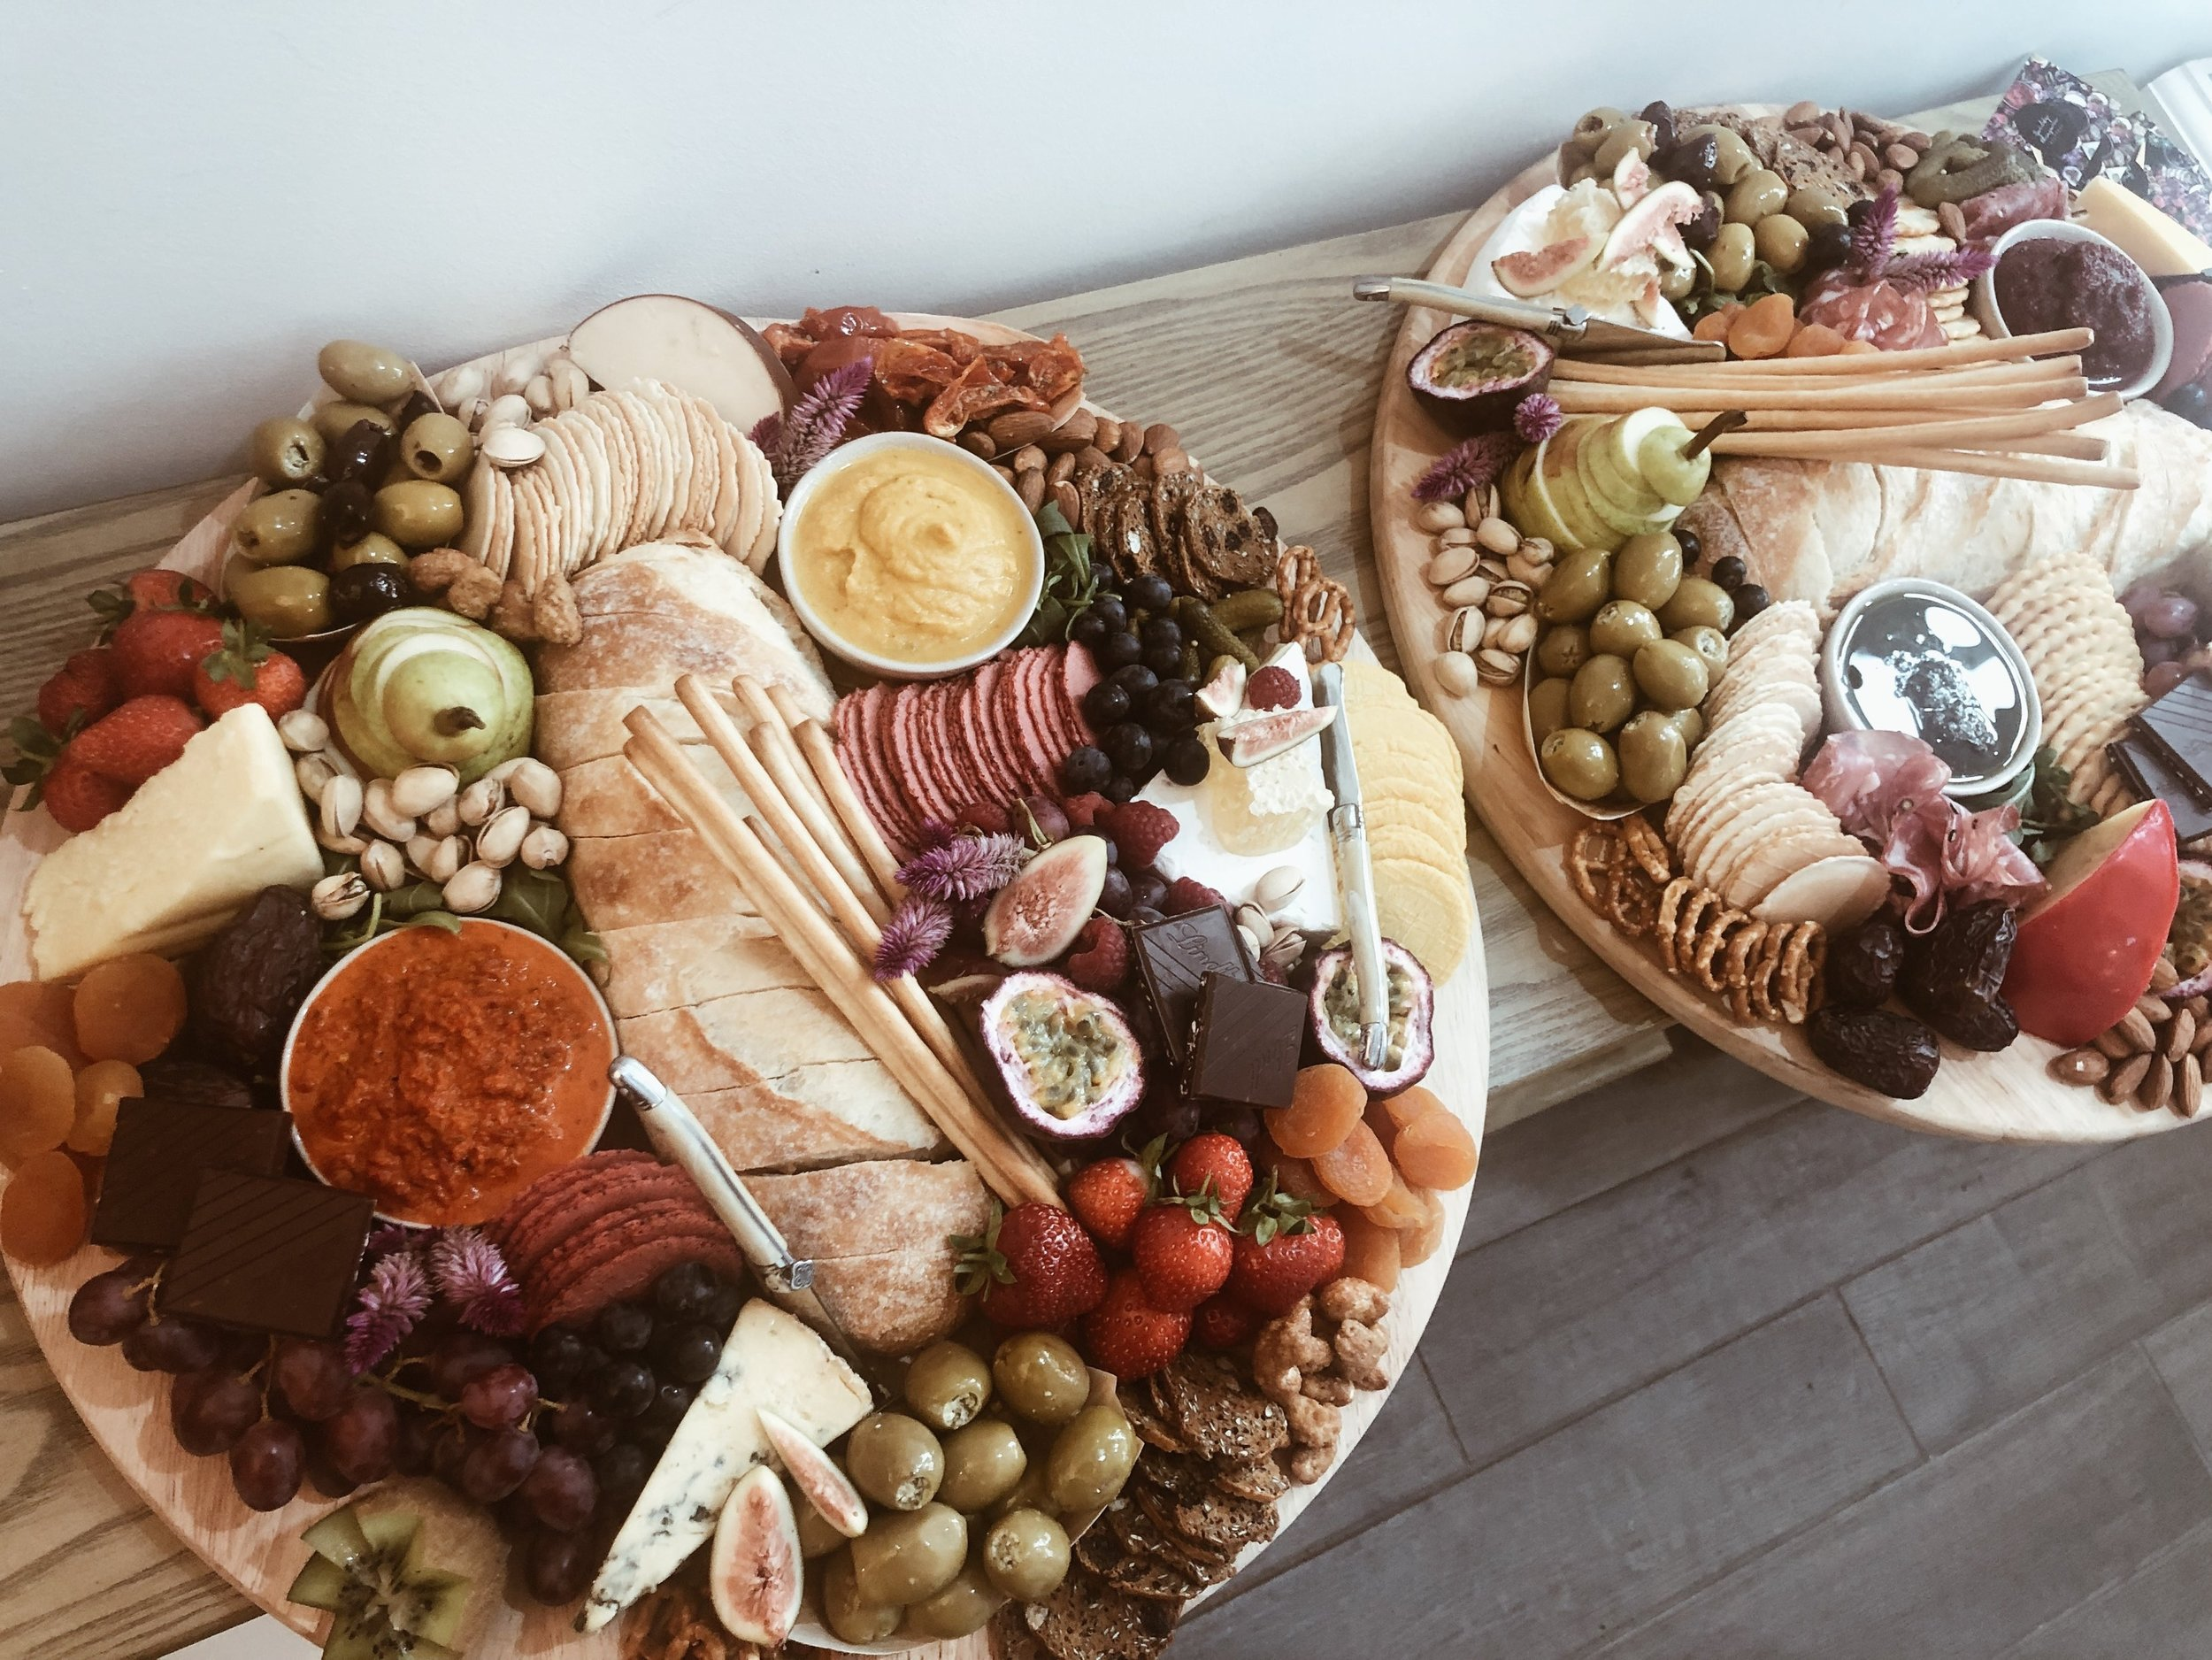 Ultimate Duo - Perfect for your next event the double duo platters are sure to make your event a hit!$310 - Grazing for 12 - 15 peopleSet on two 400mm round board and styled with bowls and cheese knives (hire items only).Comes with a serving pack of plates and serviettes. Delivery fee additional, alternatively can be collected from us (Northern end of Gold Coast). Board, bowls and cheese knives are to be returned to us washed within seven (7) days of your event.